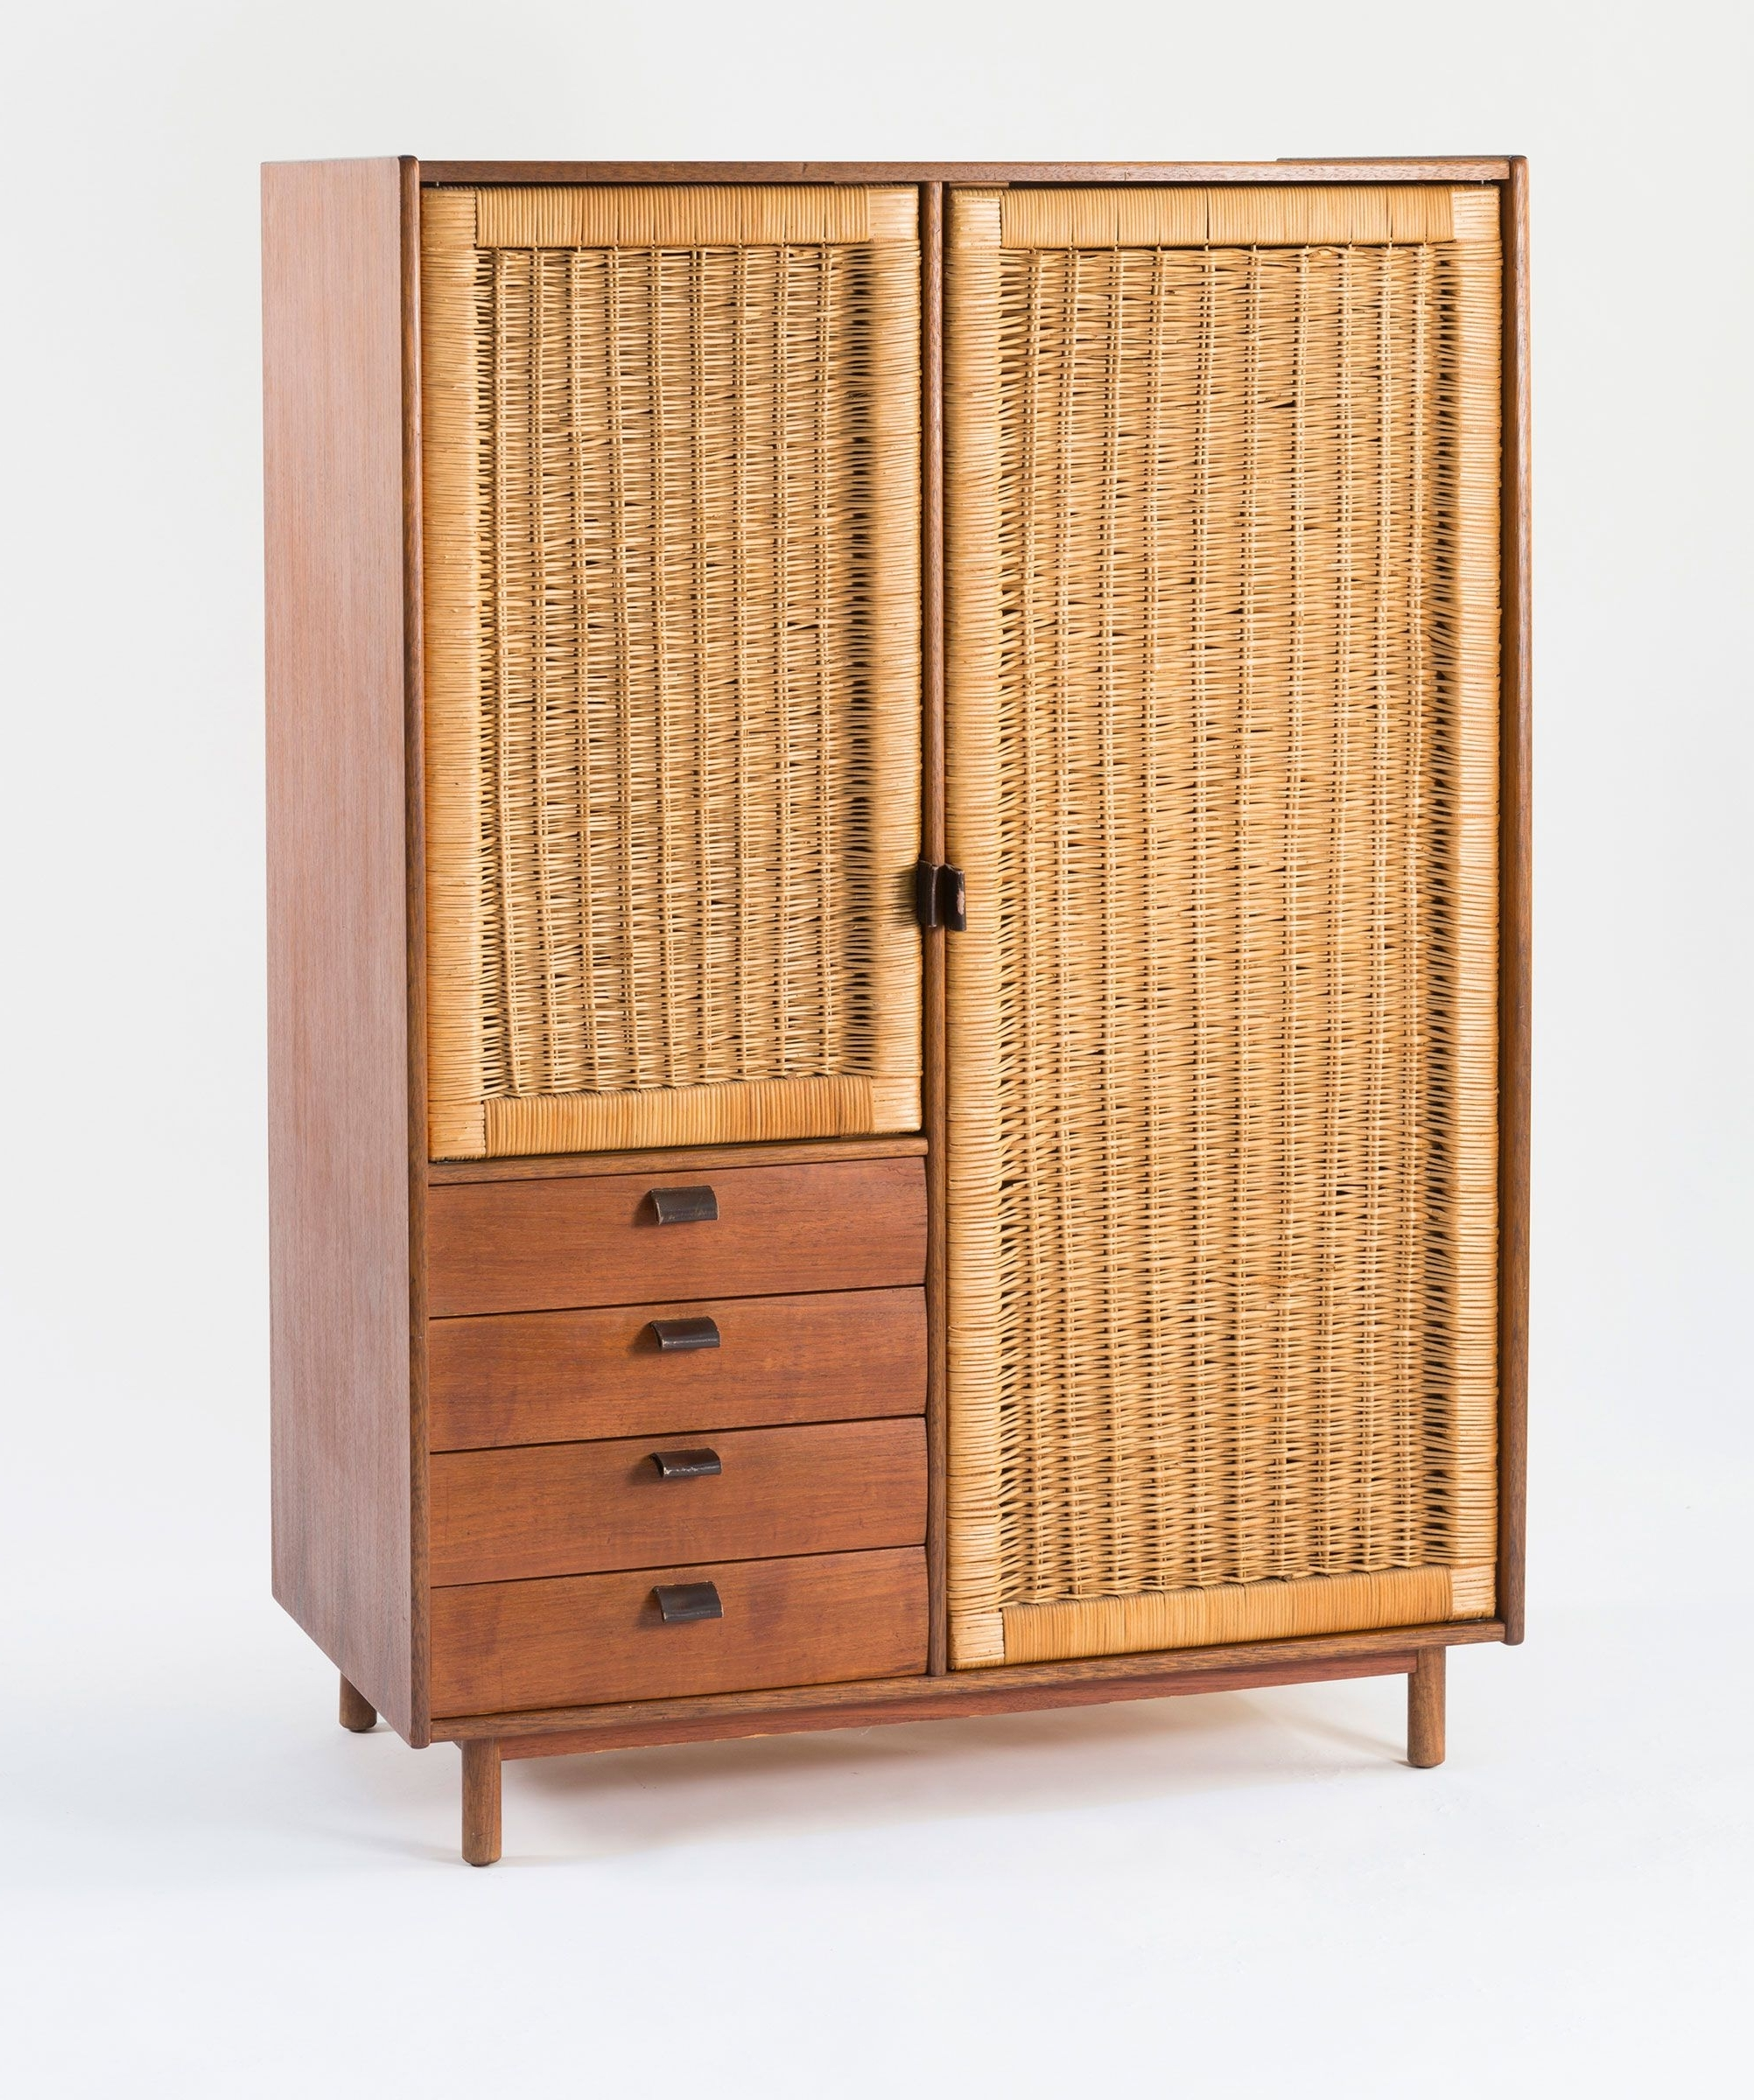 Cased Pertaining To White Rattan Wardrobes (View 7 of 15)